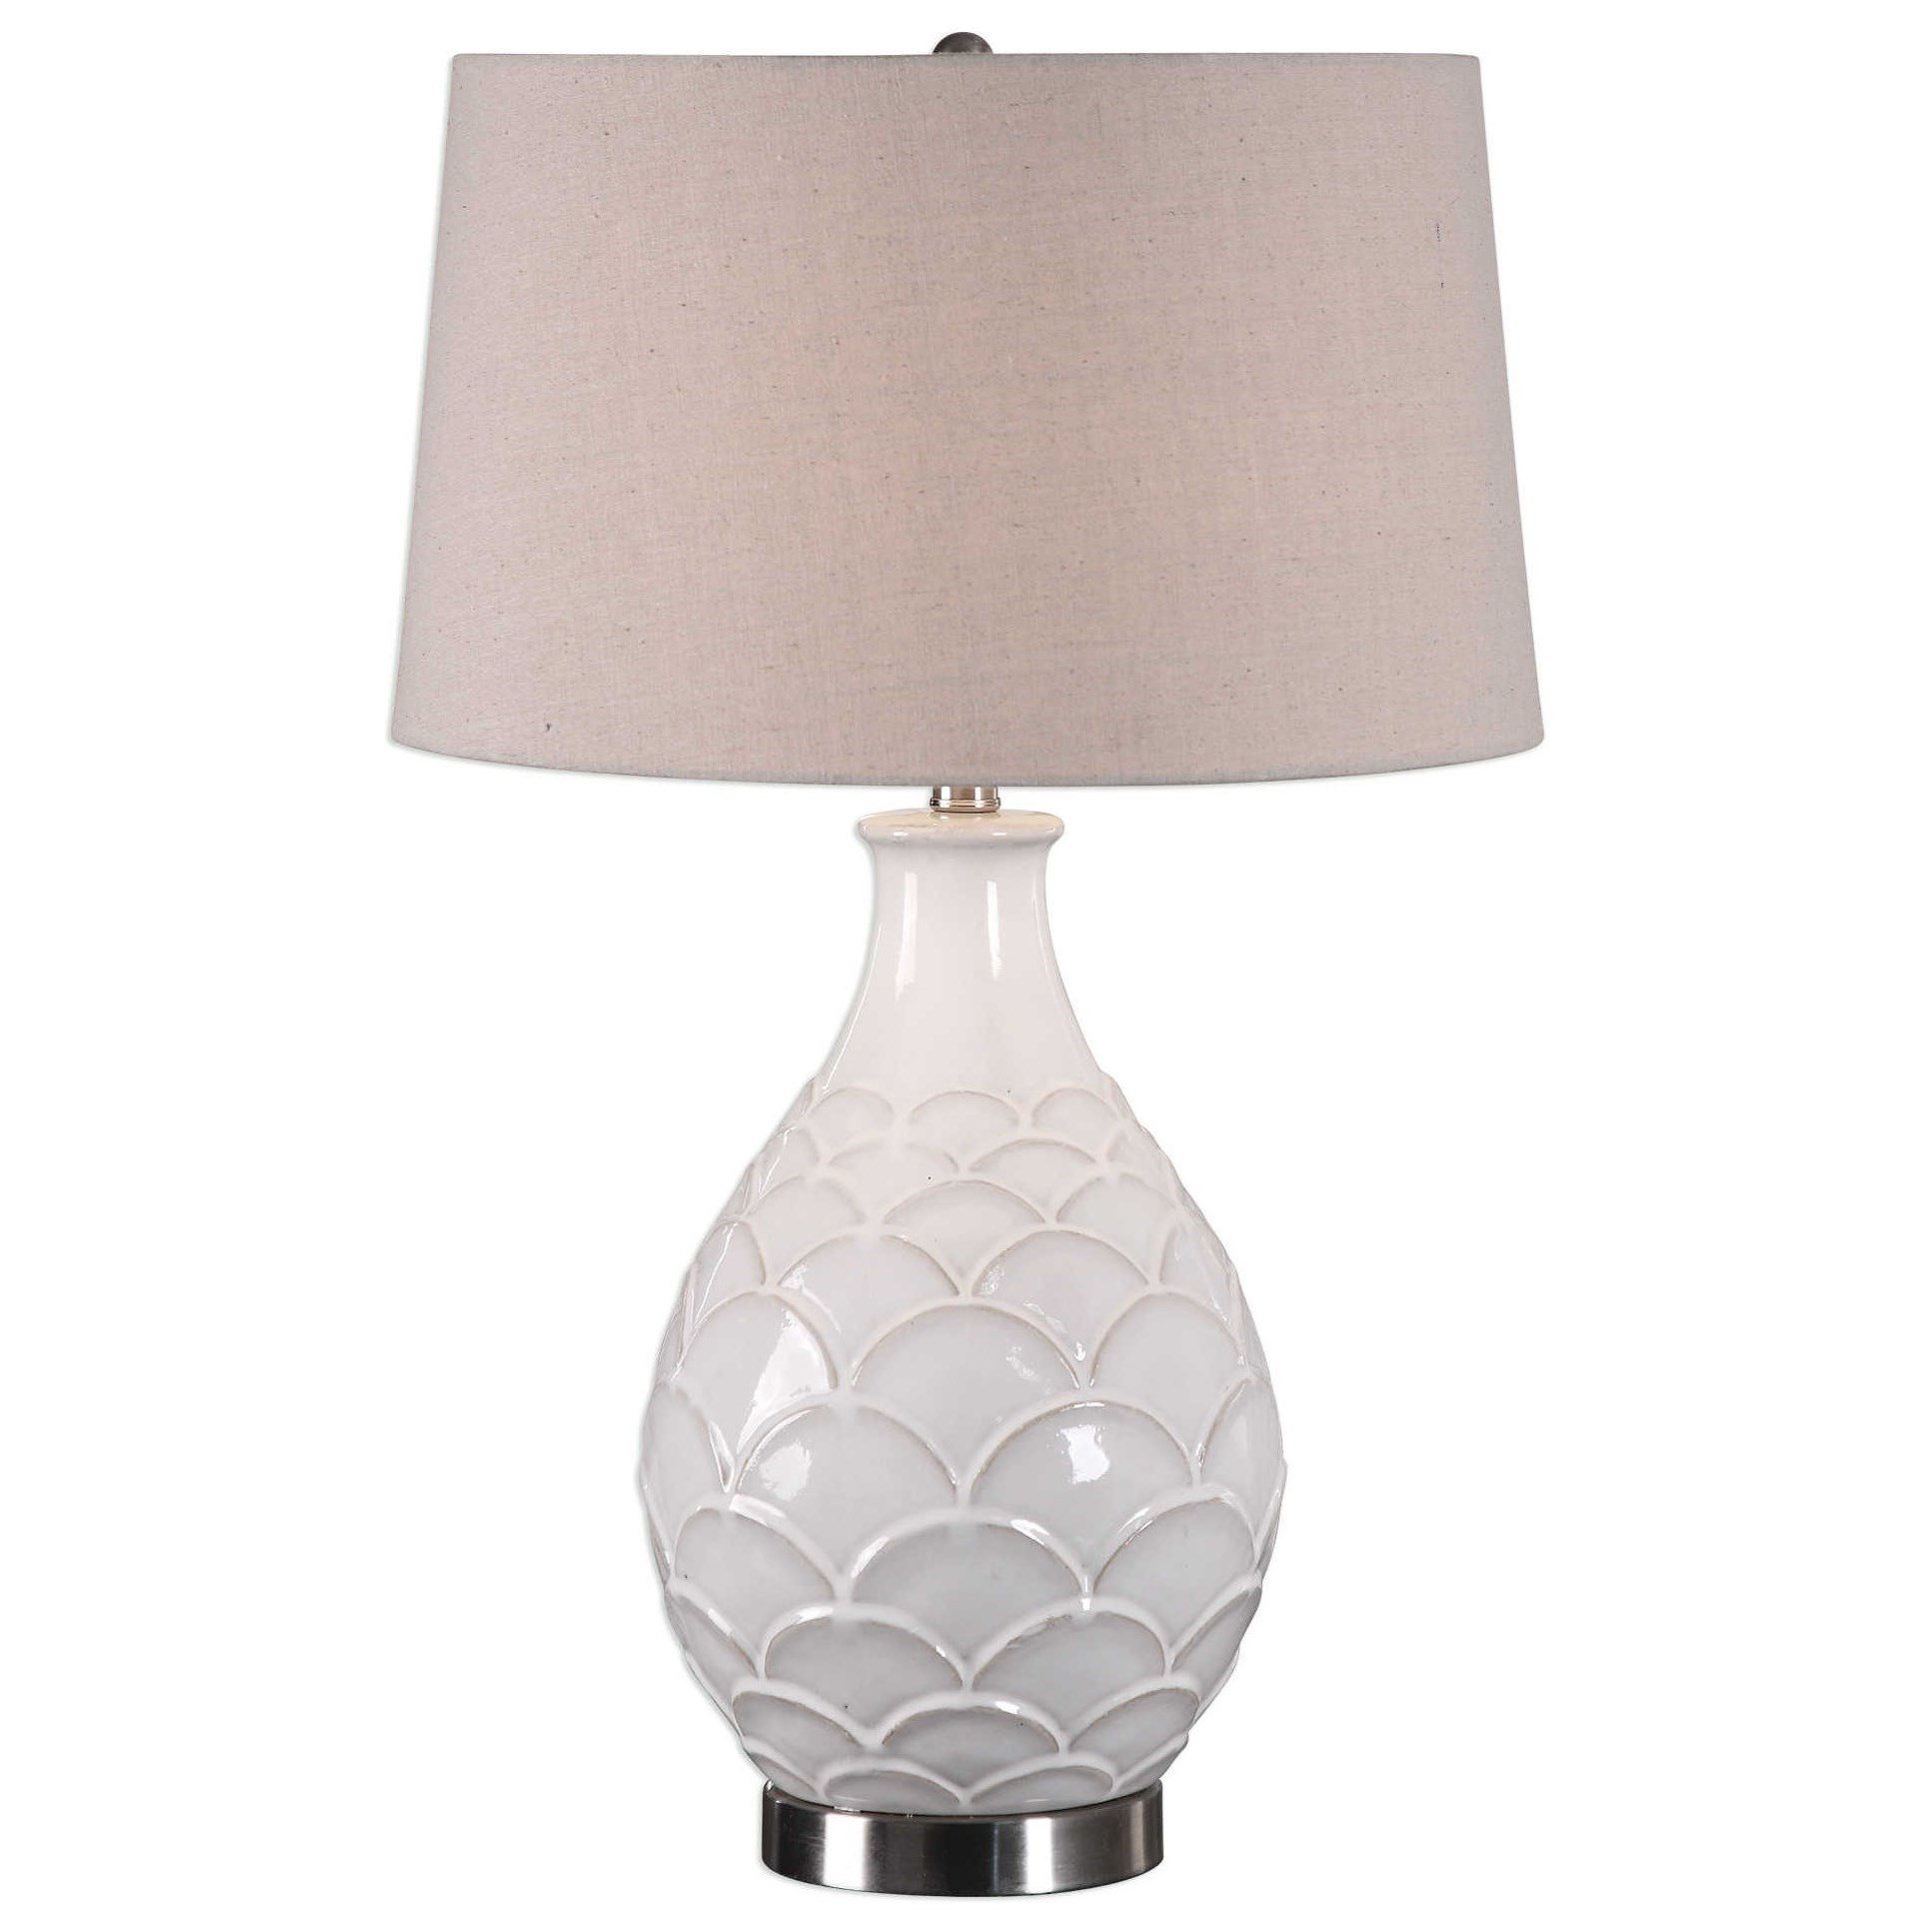 Table Lamps Camellia Glossed White Table Lamp by Uttermost at Suburban Furniture